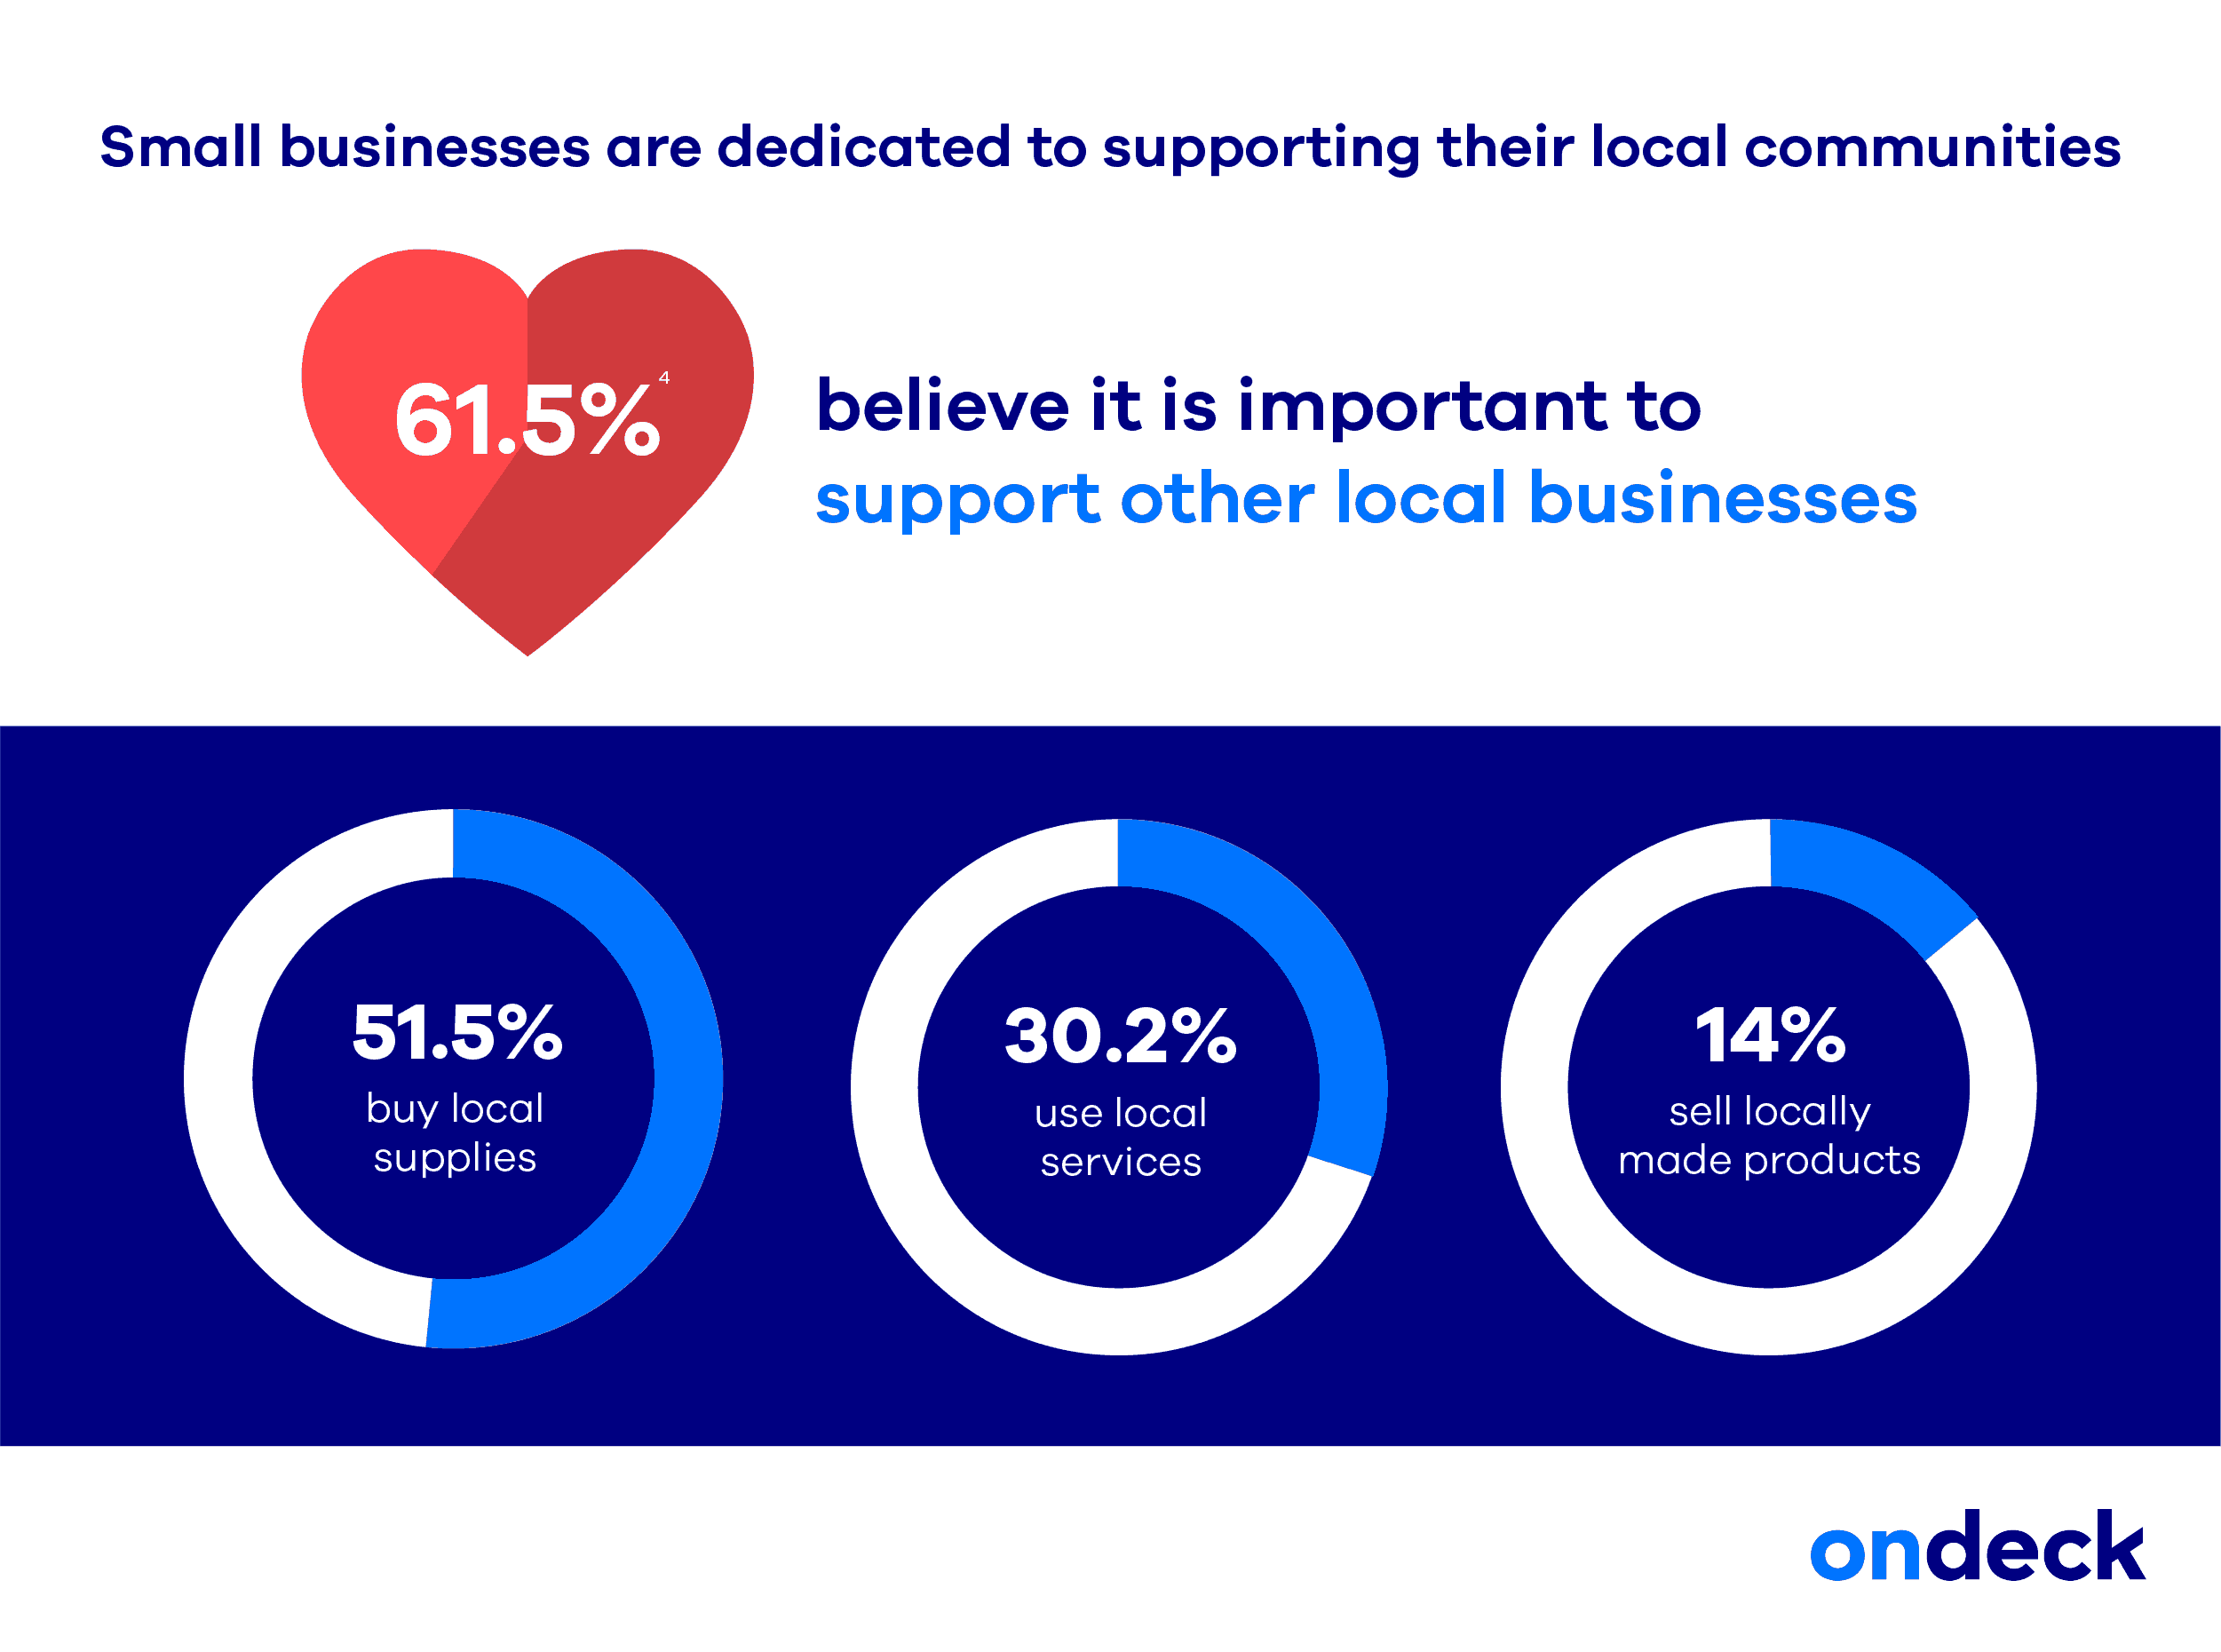 ondeck second annual small business community impact survey